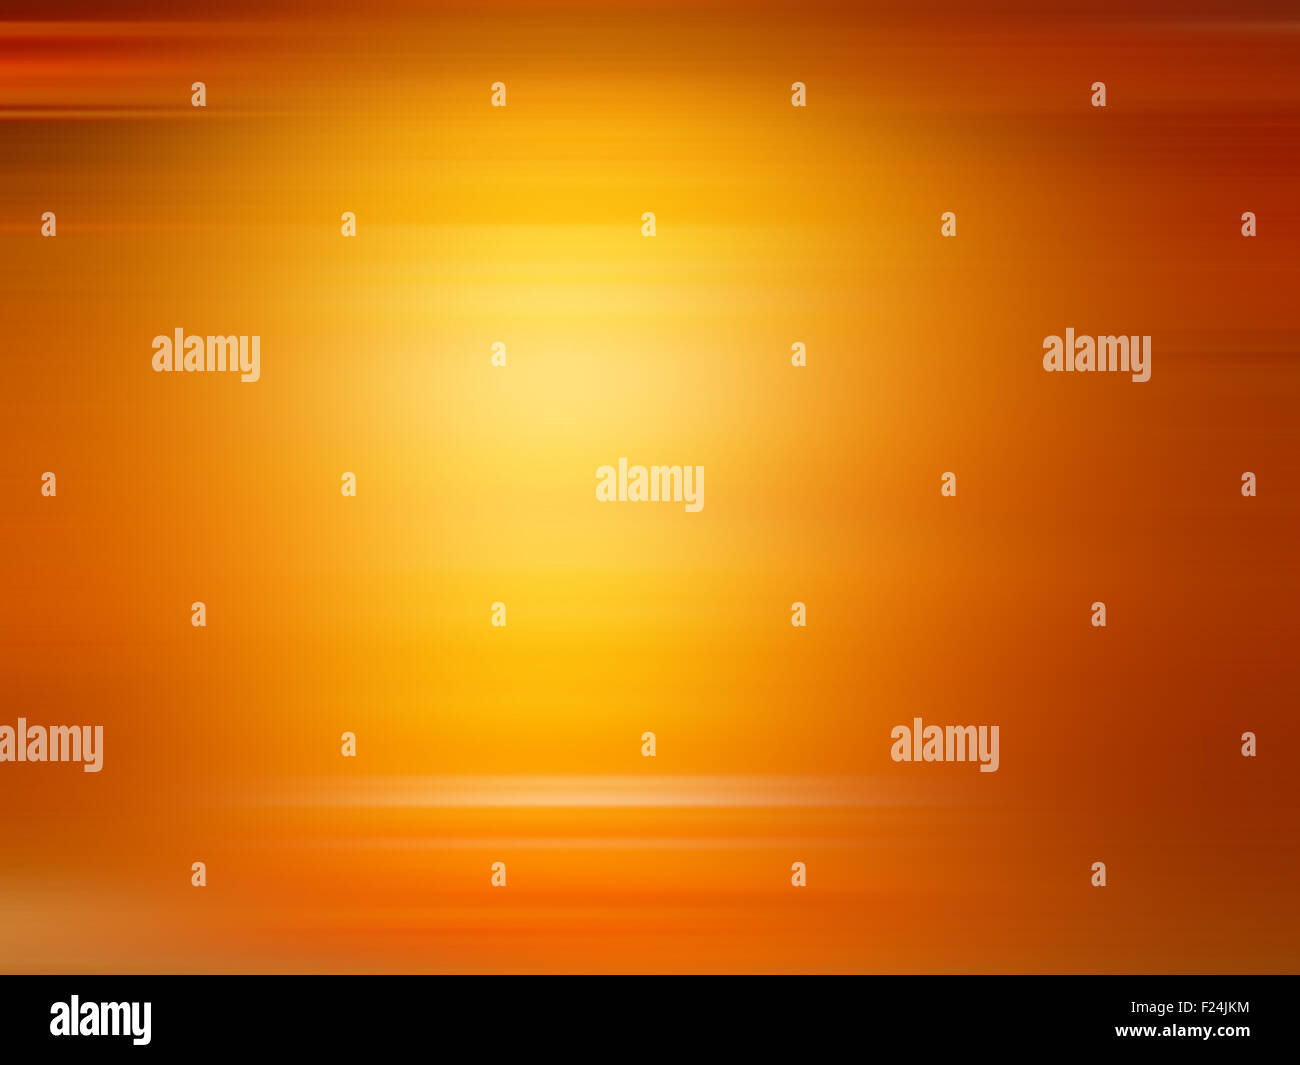 Background for websites stock photos background for websites stock a glazy orange background with bright horizontal patterns for templates or websites stock image maxwellsz